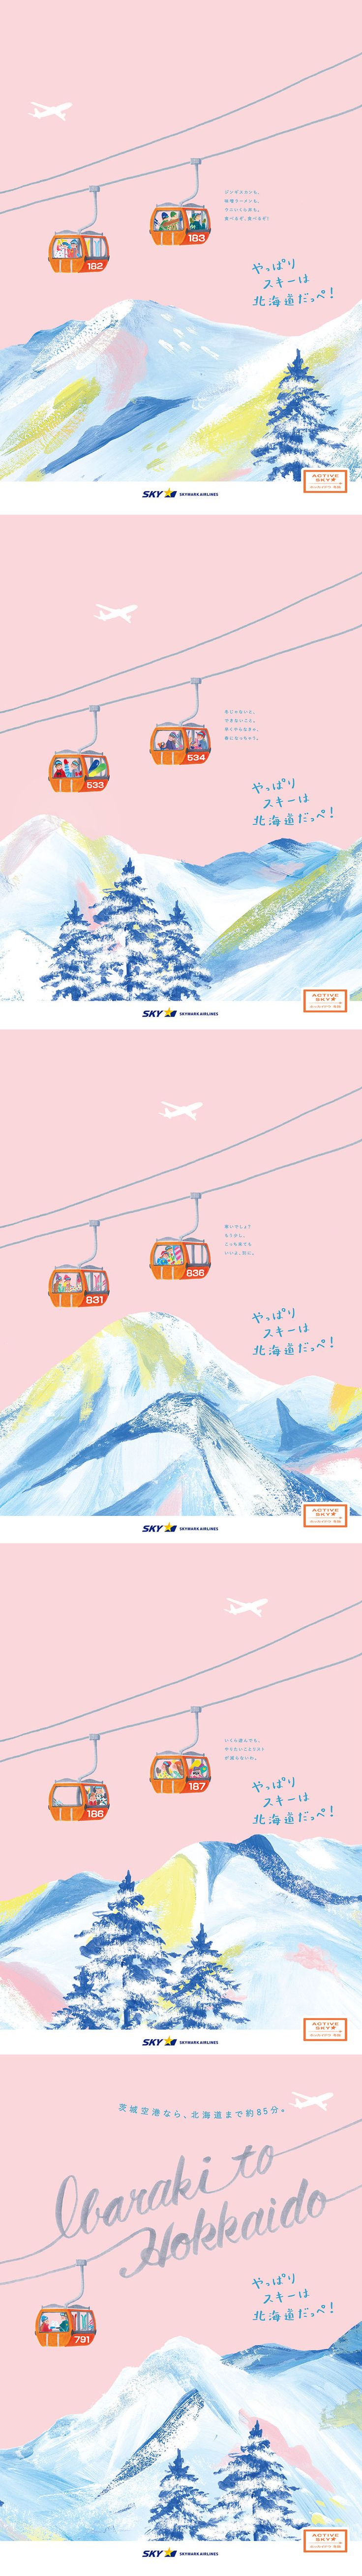 SKYMARK poster illustration